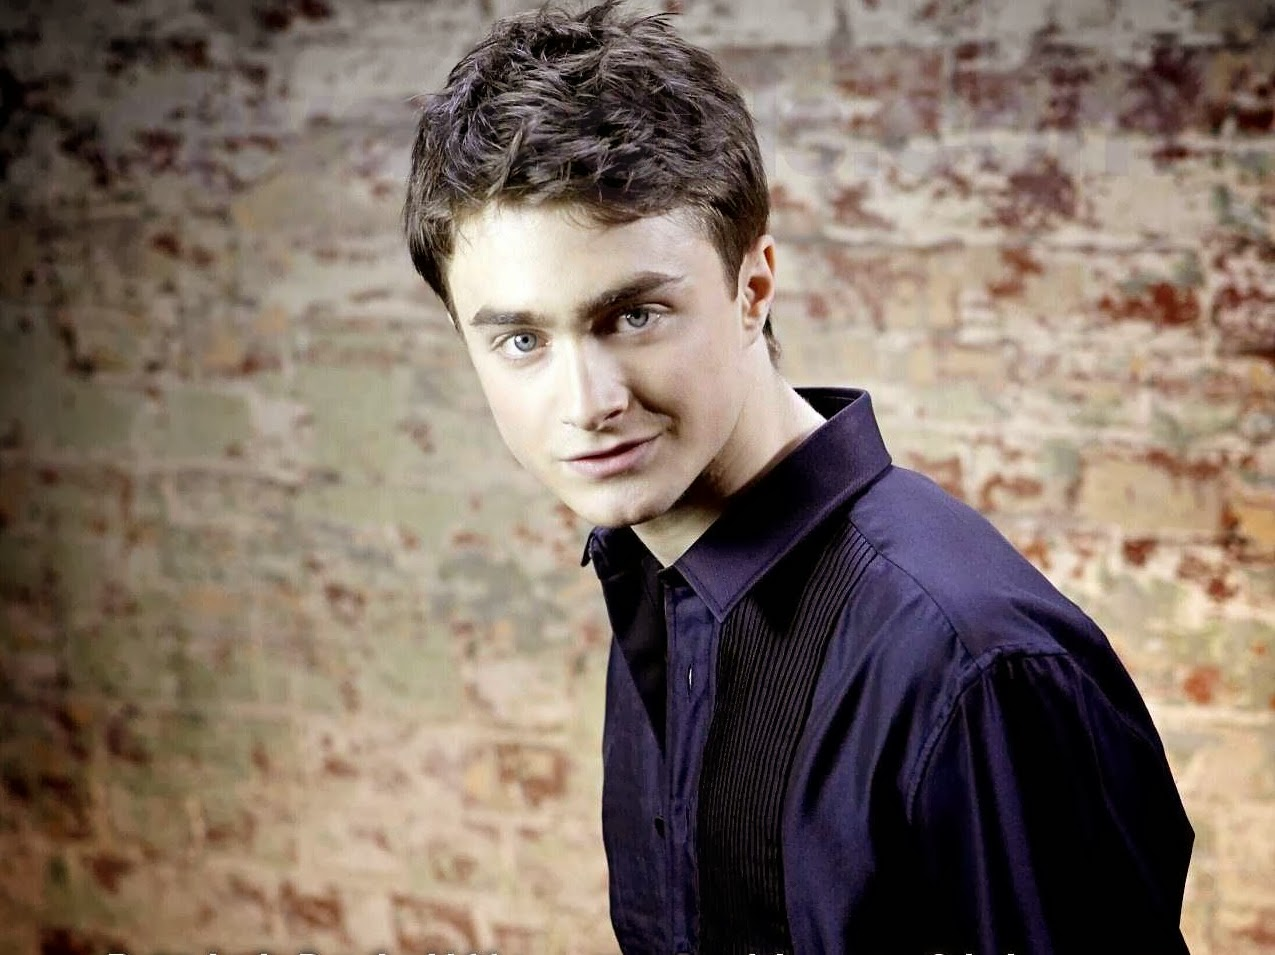 radcliffe hd wallpapers num2 - photo #16